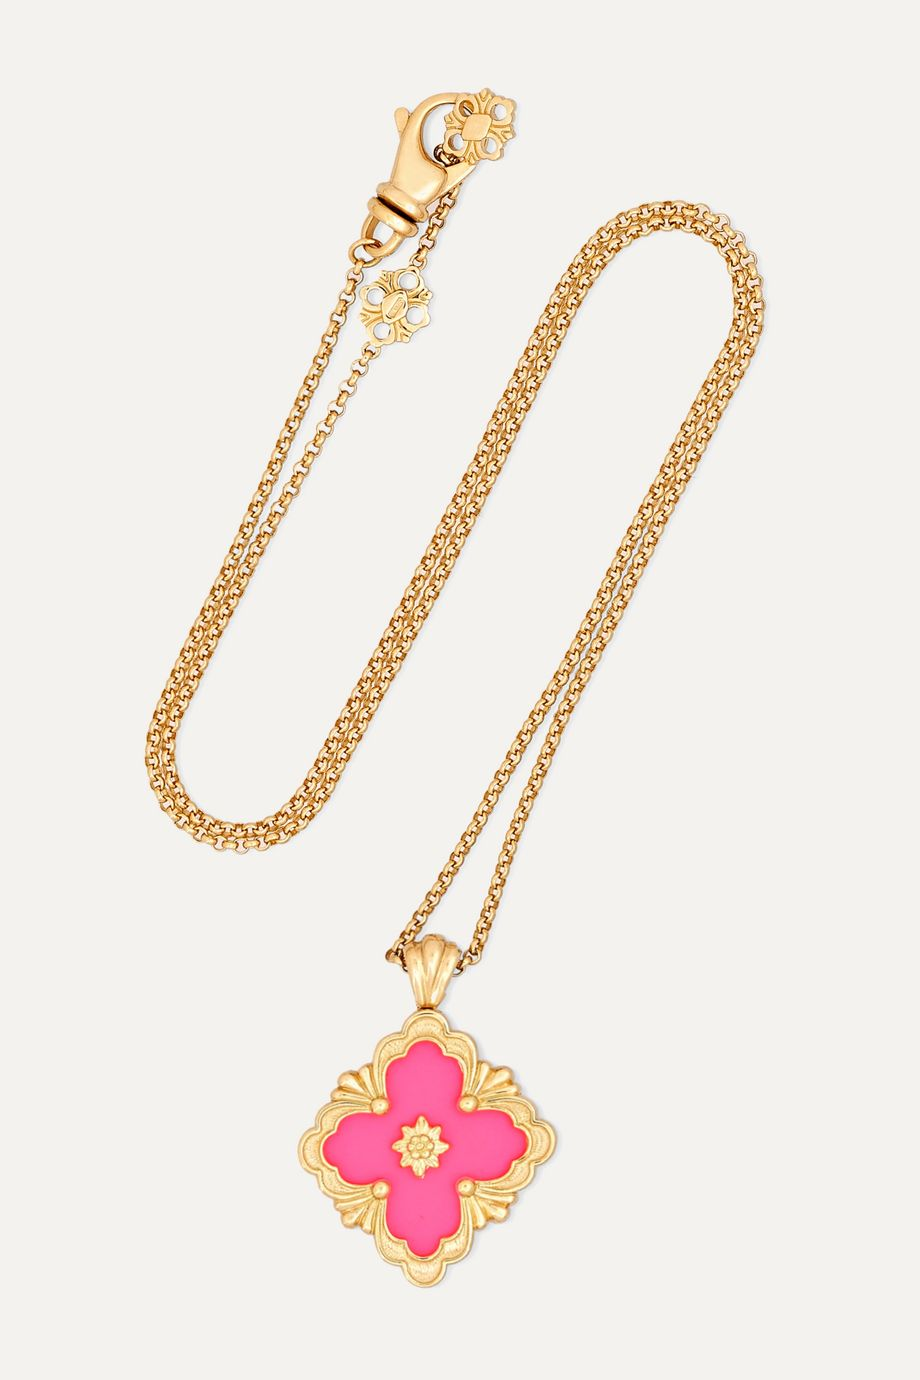 Buccellati 18-karat yellow gold and enamel necklace